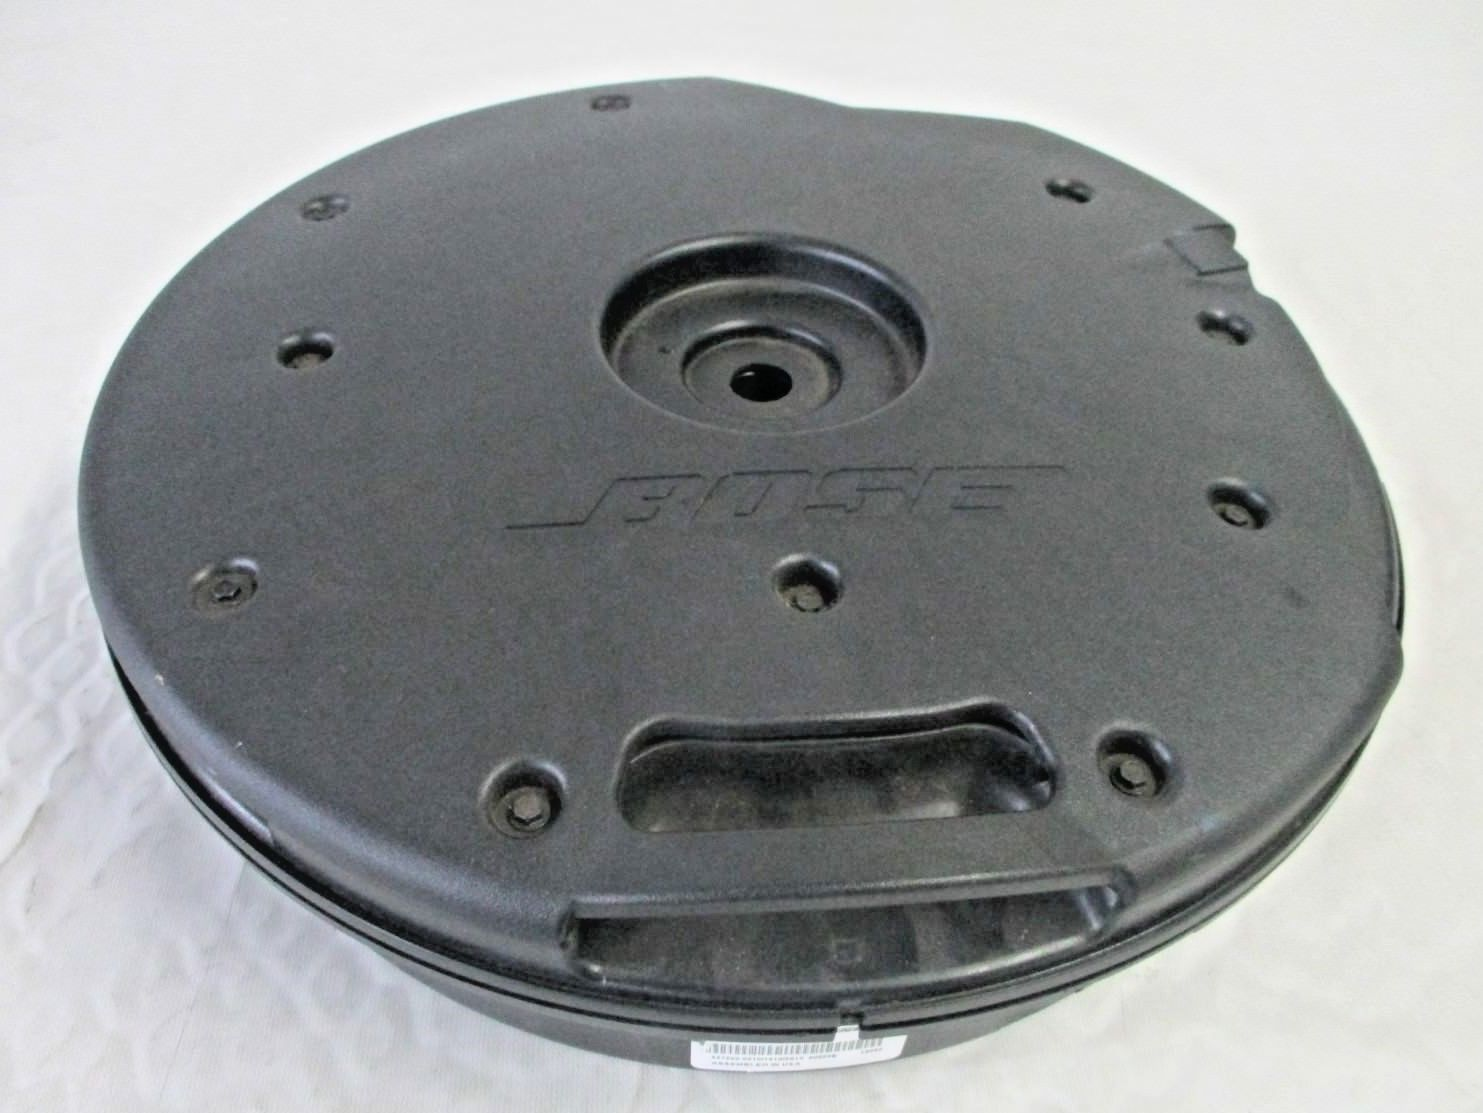 Awesome OEM 2015 2016 2017 NISSAN MURANO ROGUE 370Z BOSE SUBWOOFER SUB  WOOFER SPEAKER 2018